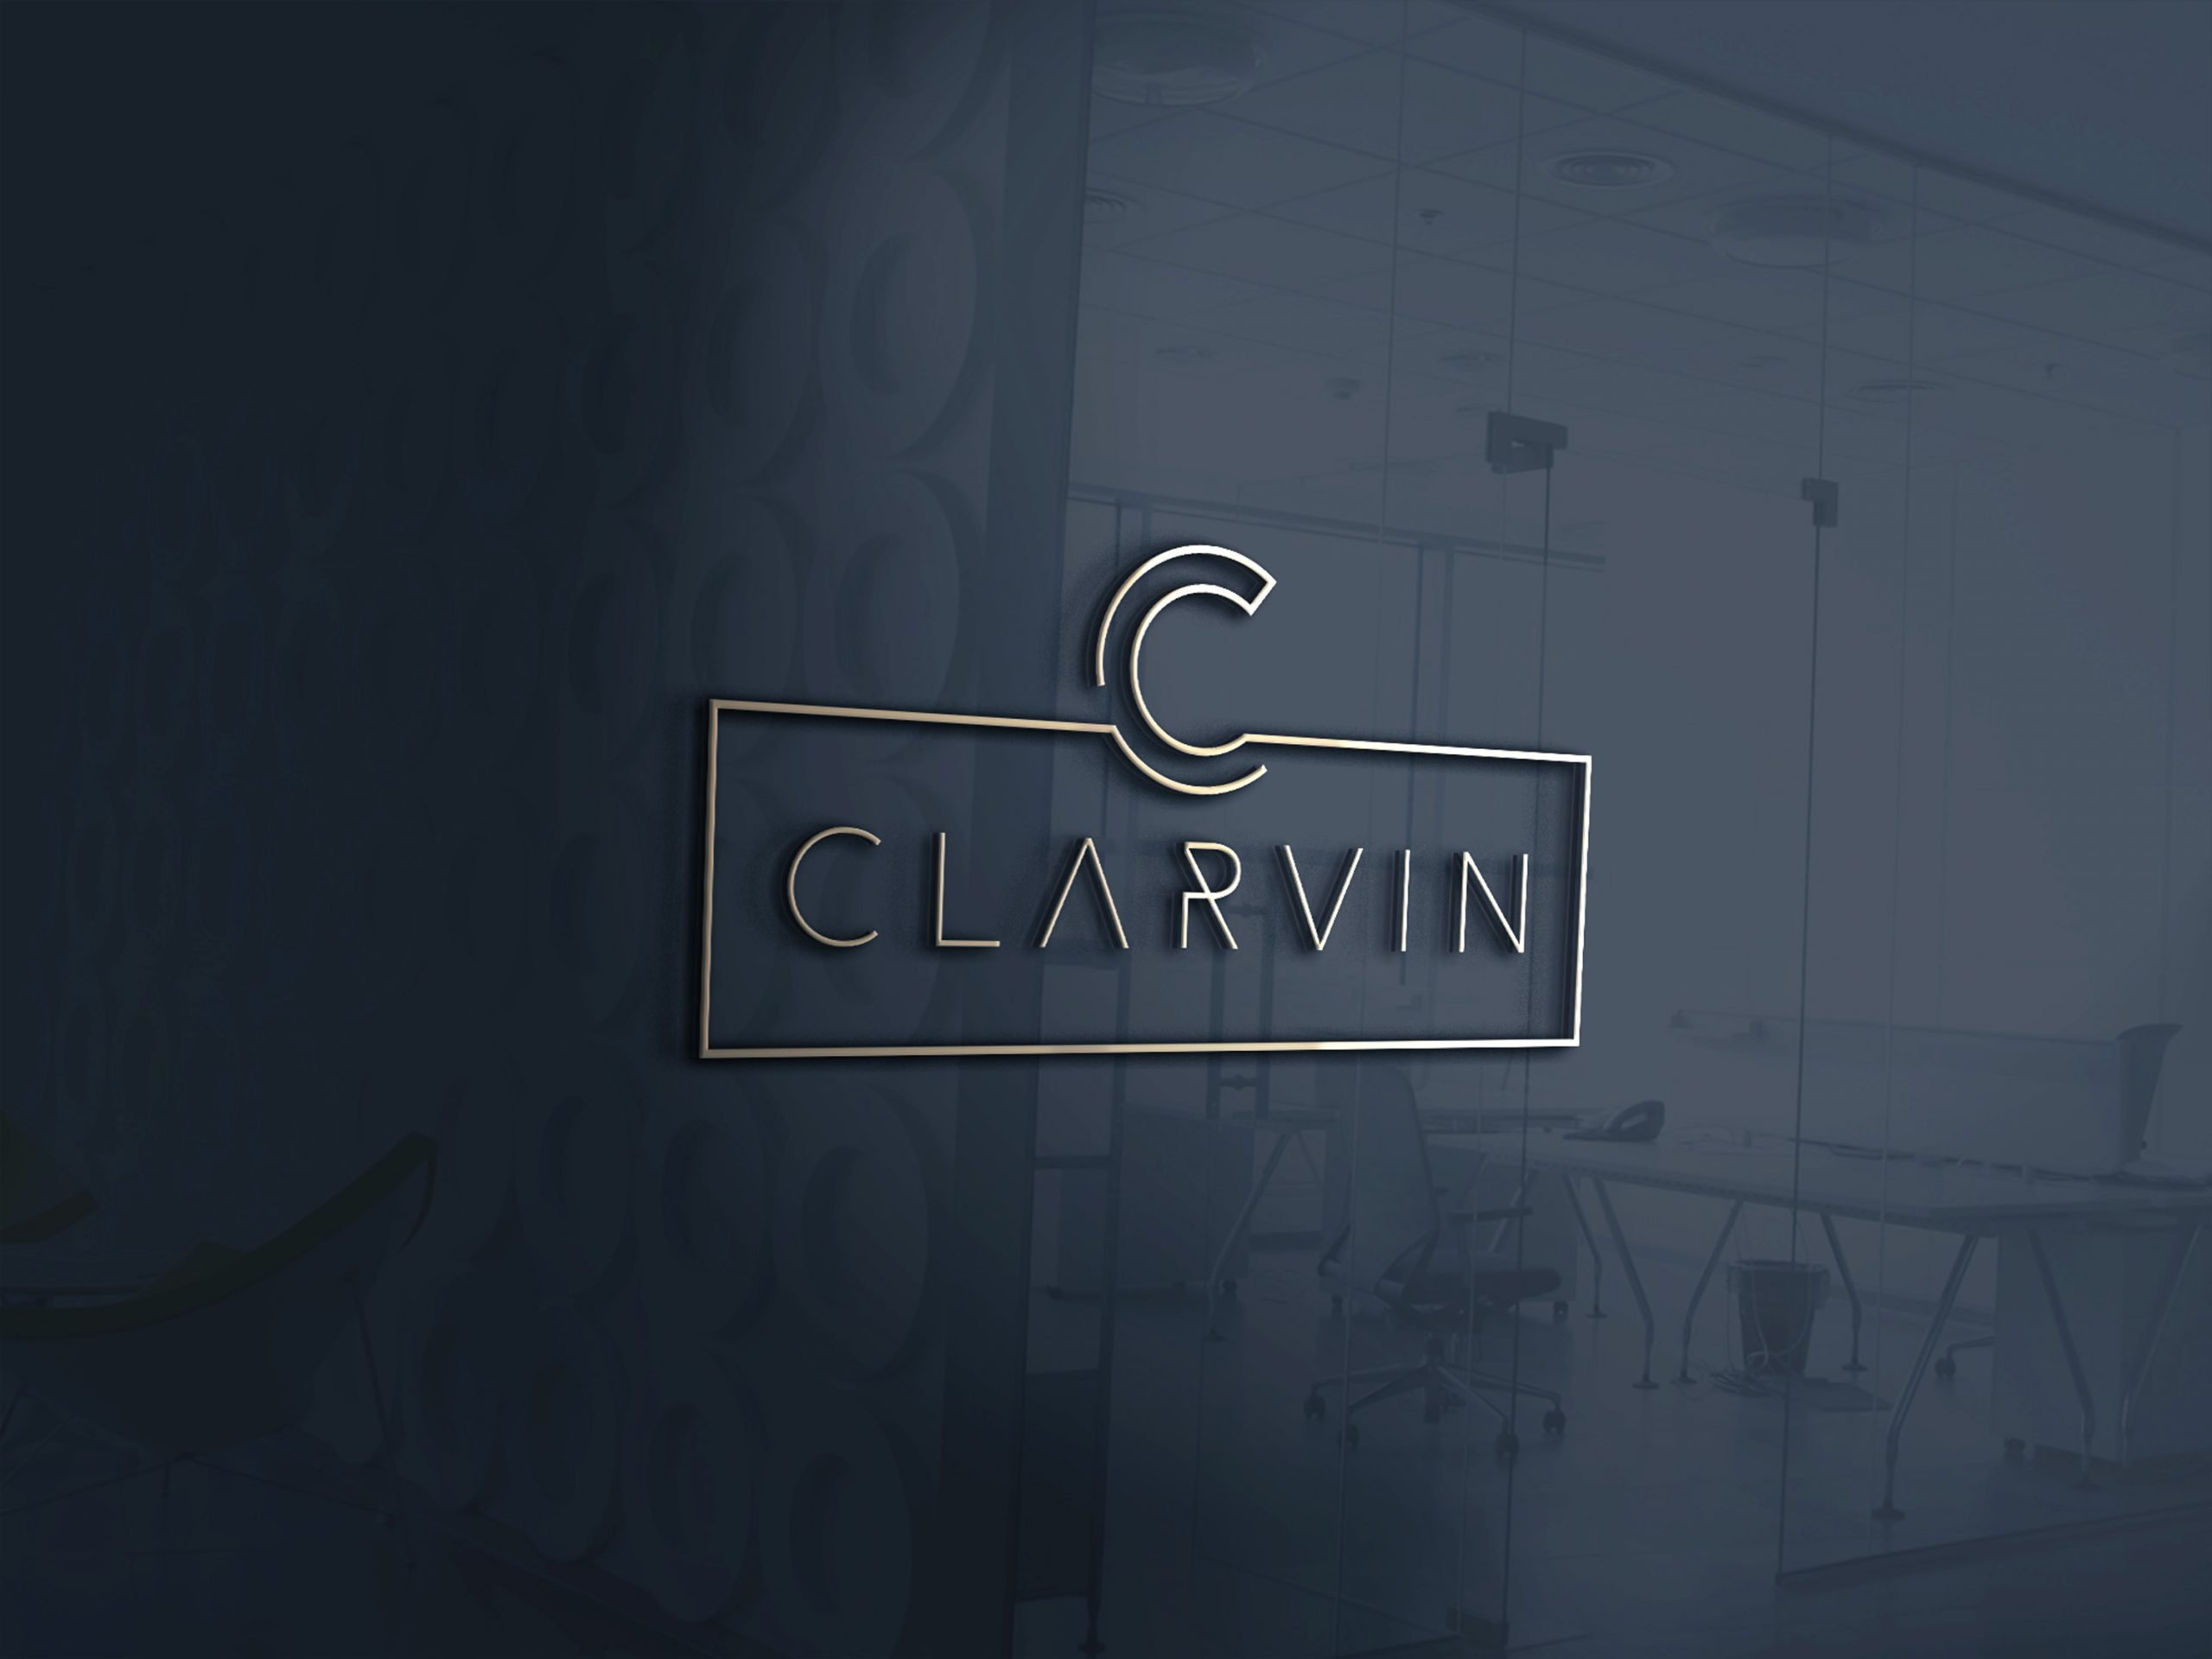 CLARVIN Logo - Mj Design Center